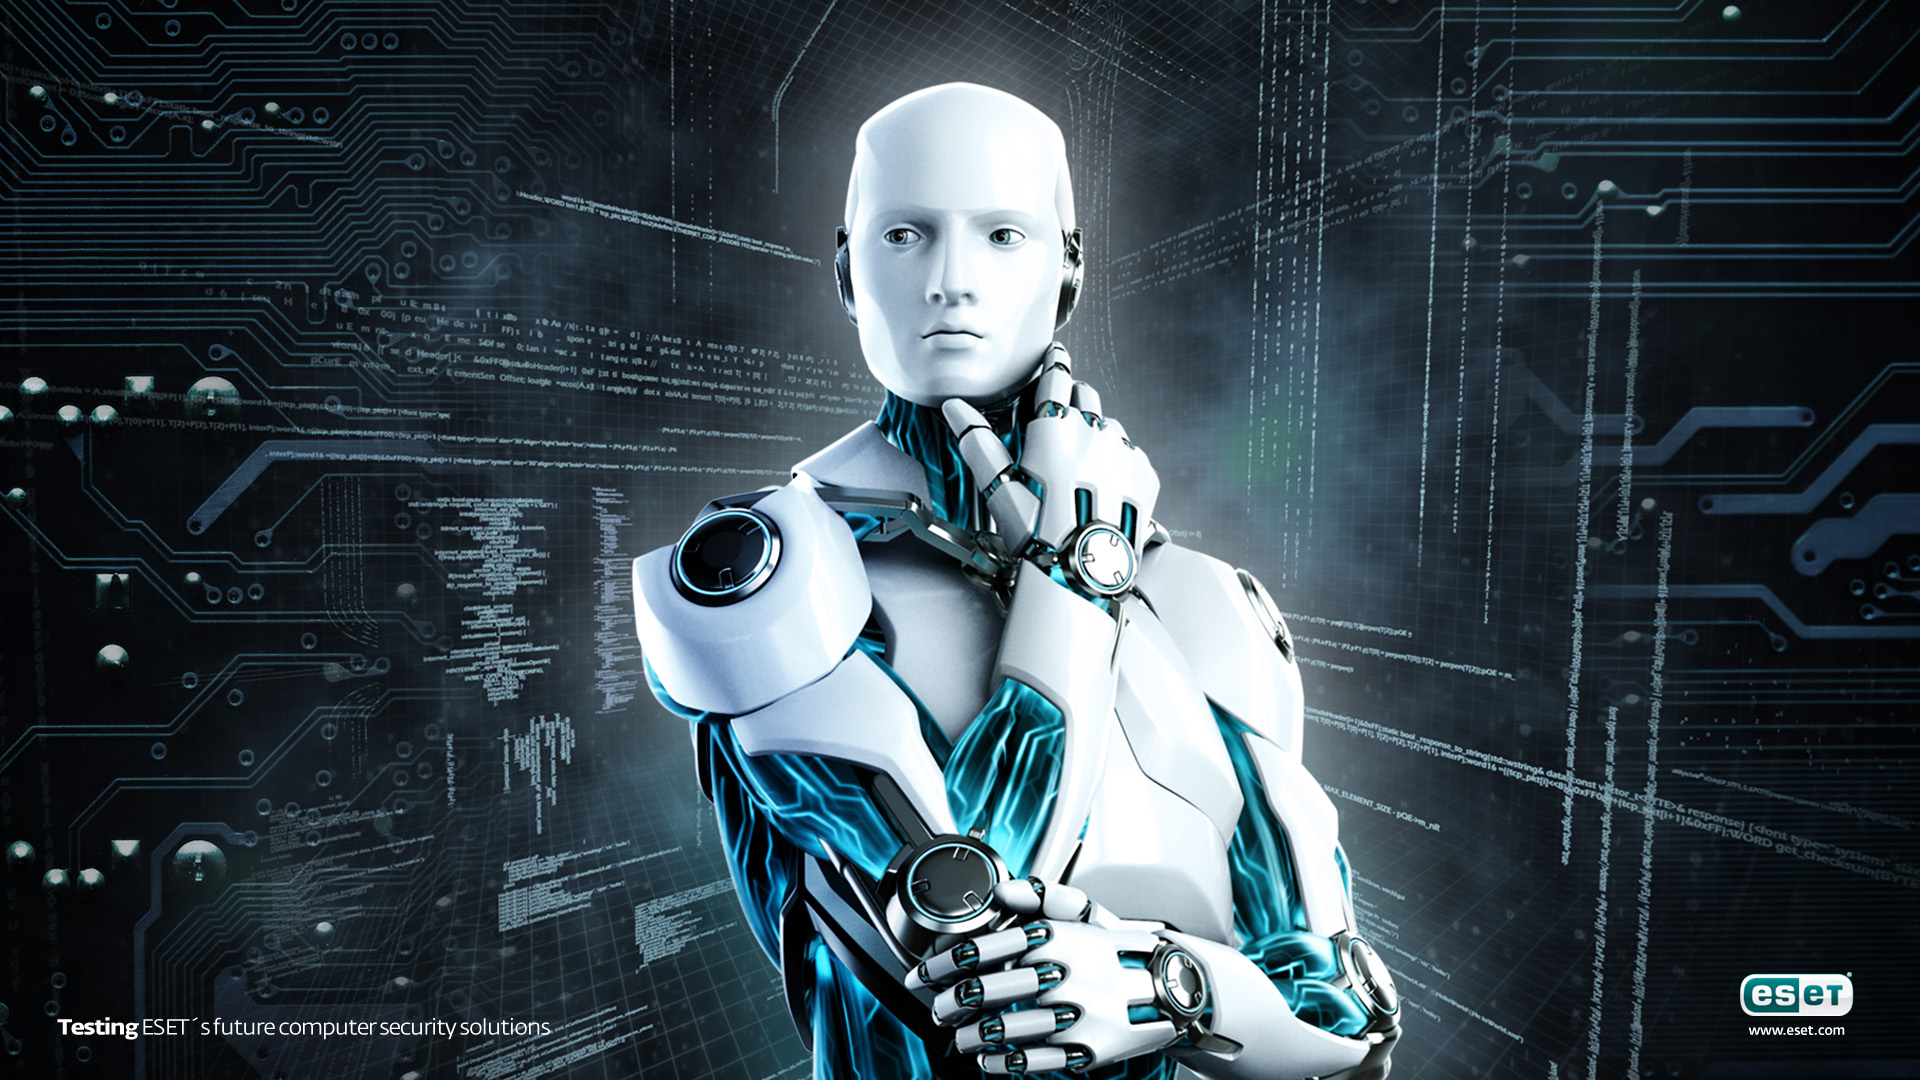 Eset S Threat Trends Predictions 2014 The Next Battle For